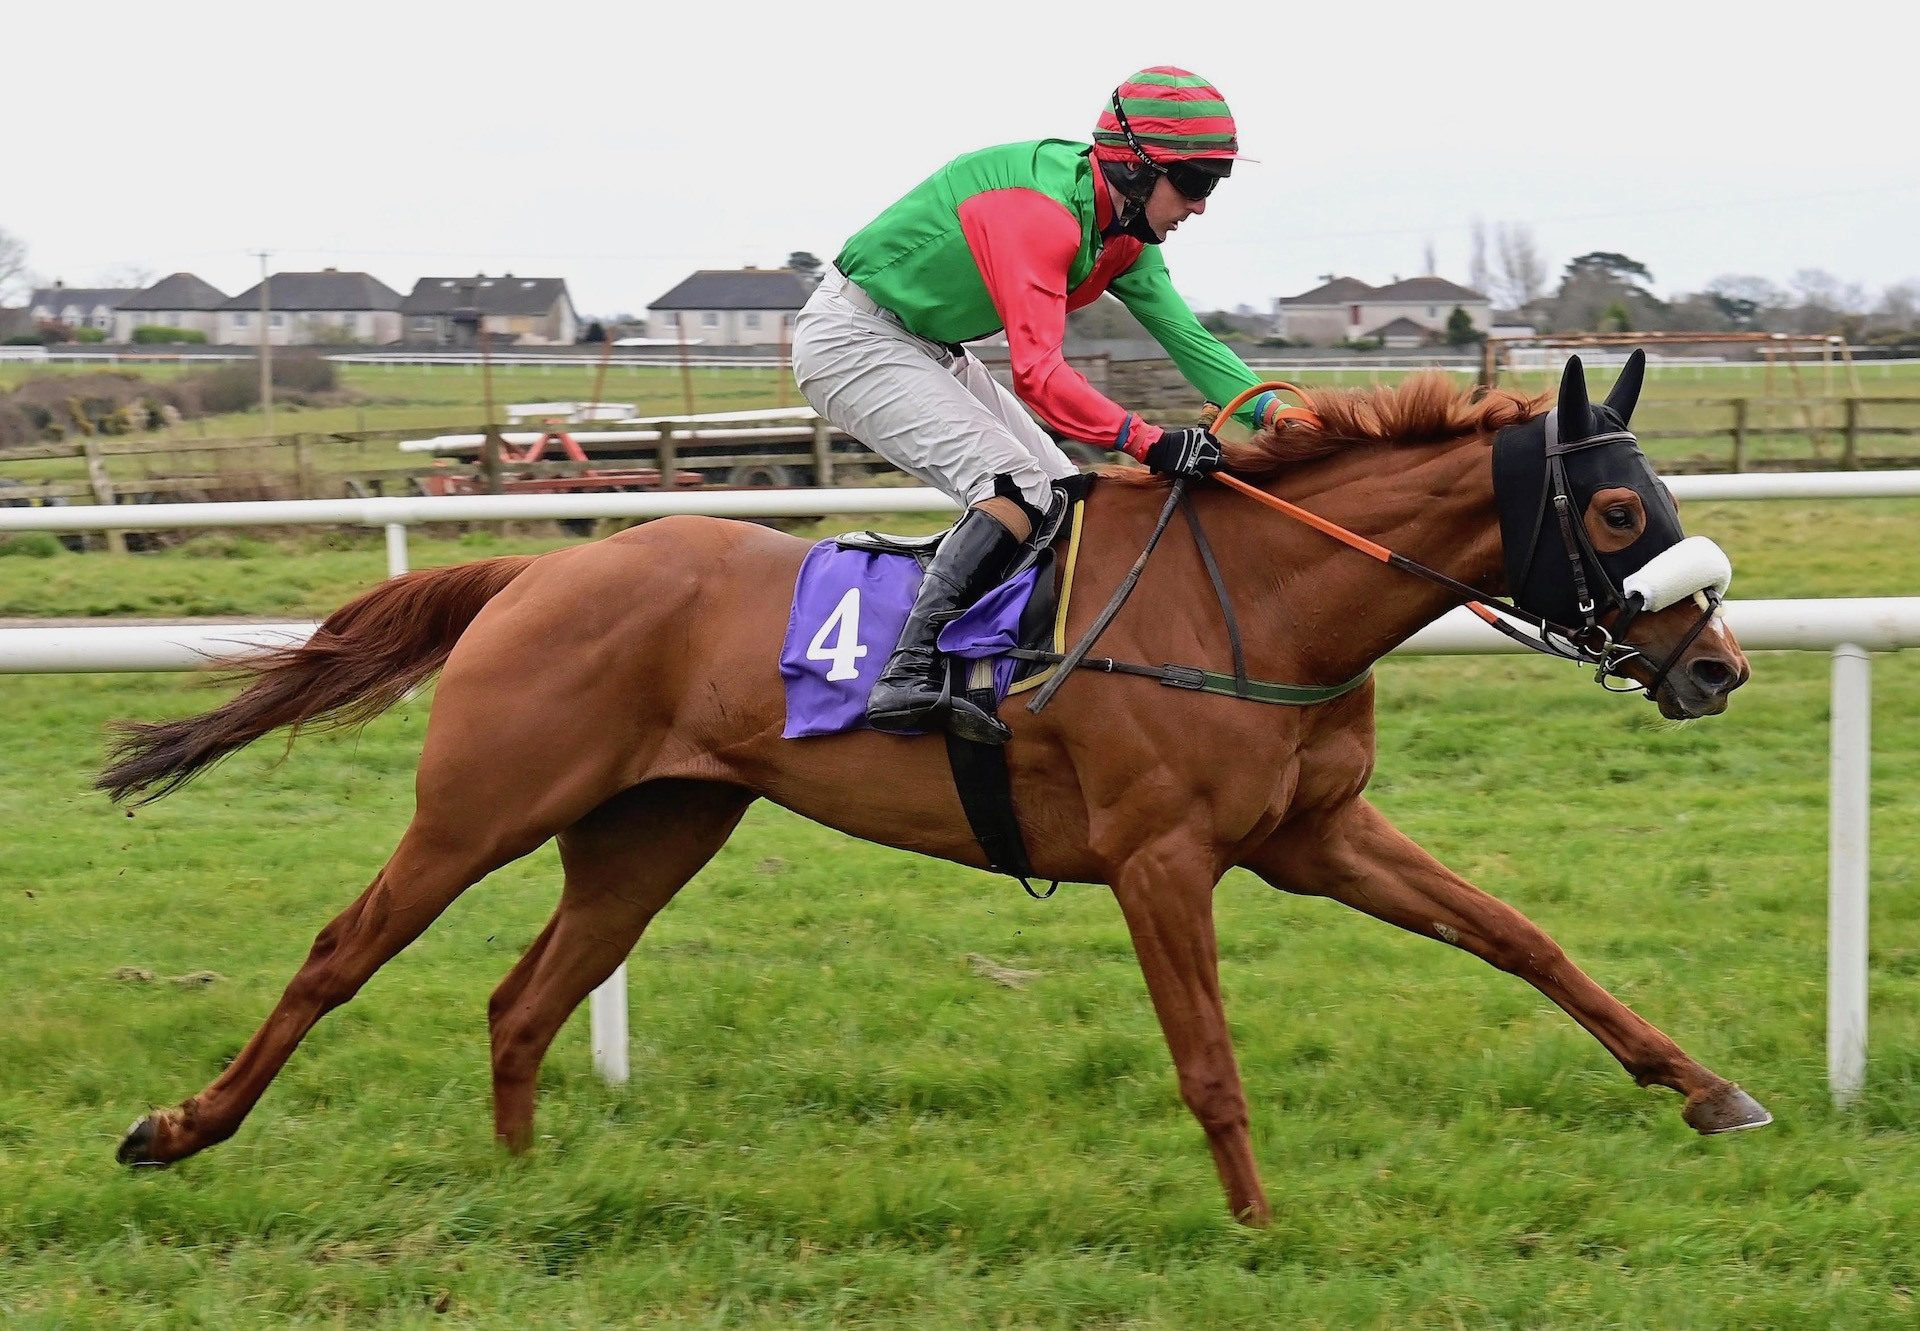 Henry Box Brown (Getaway) Wins On Debut At Wexford